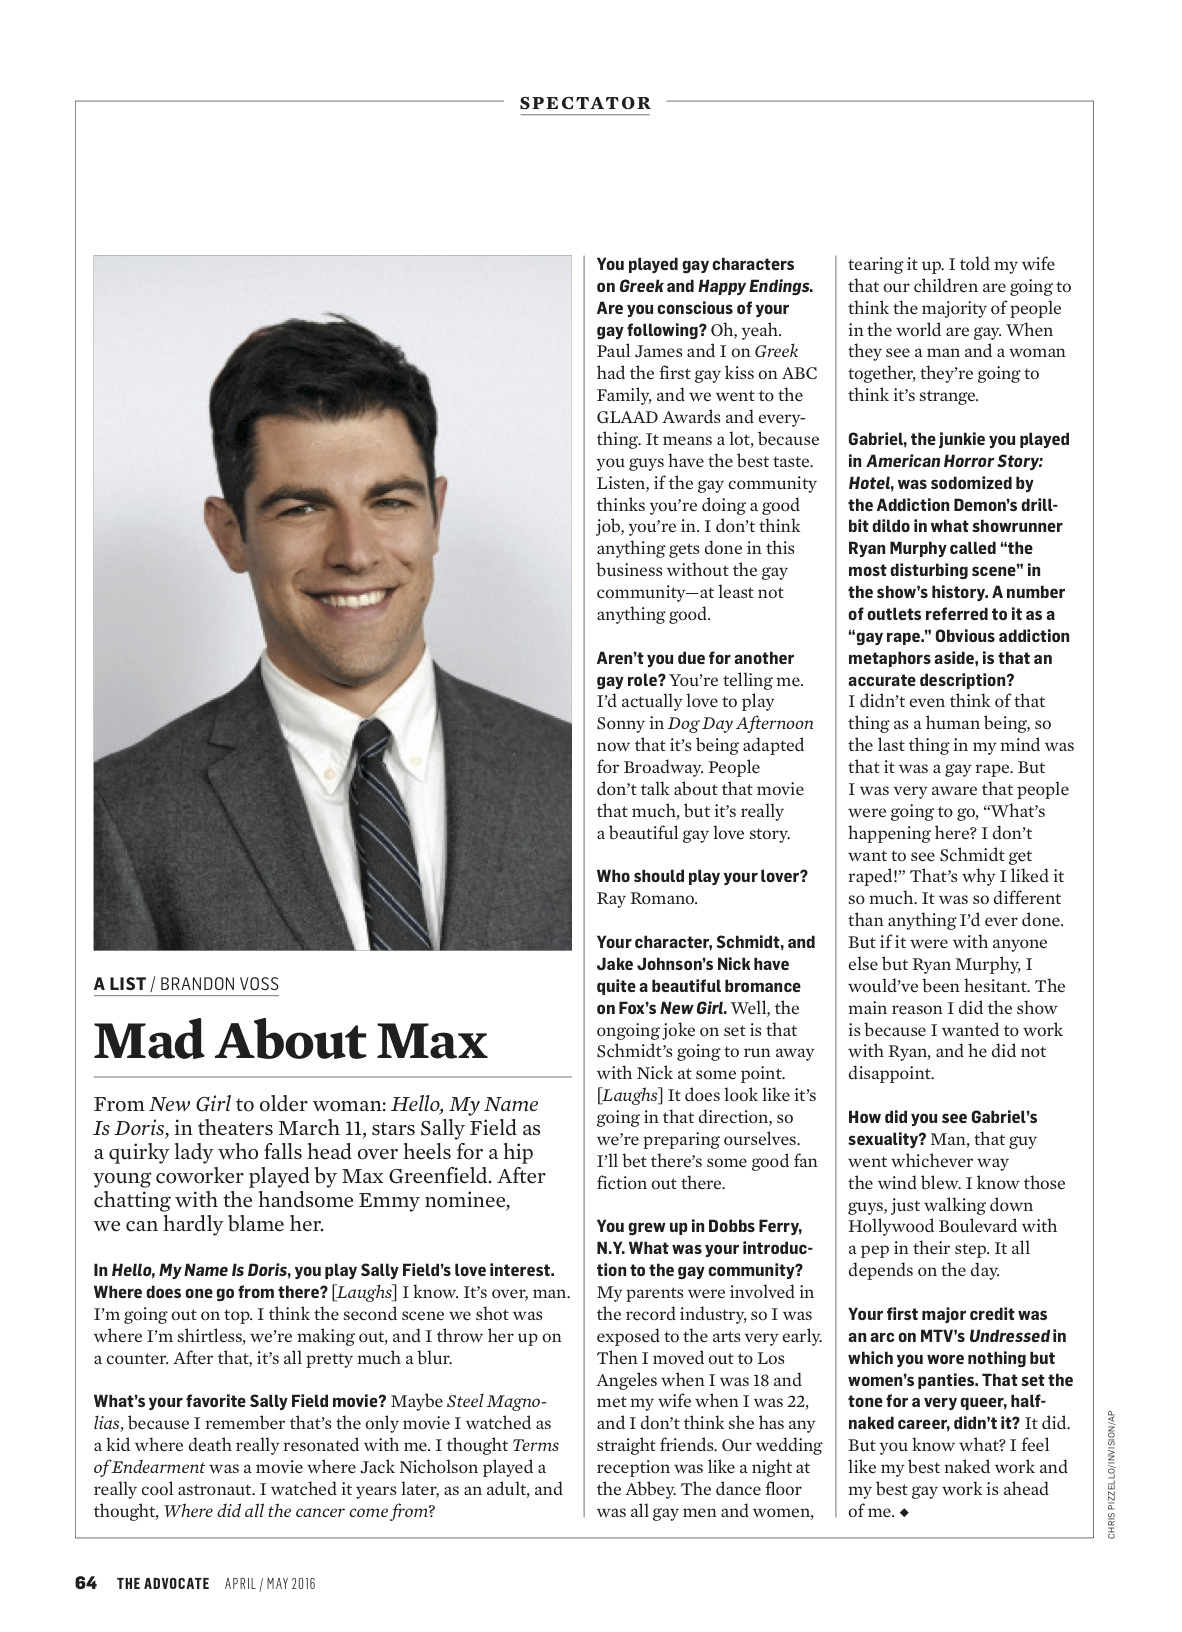 Max Greenfield: Mad About Max — Brandon Voss